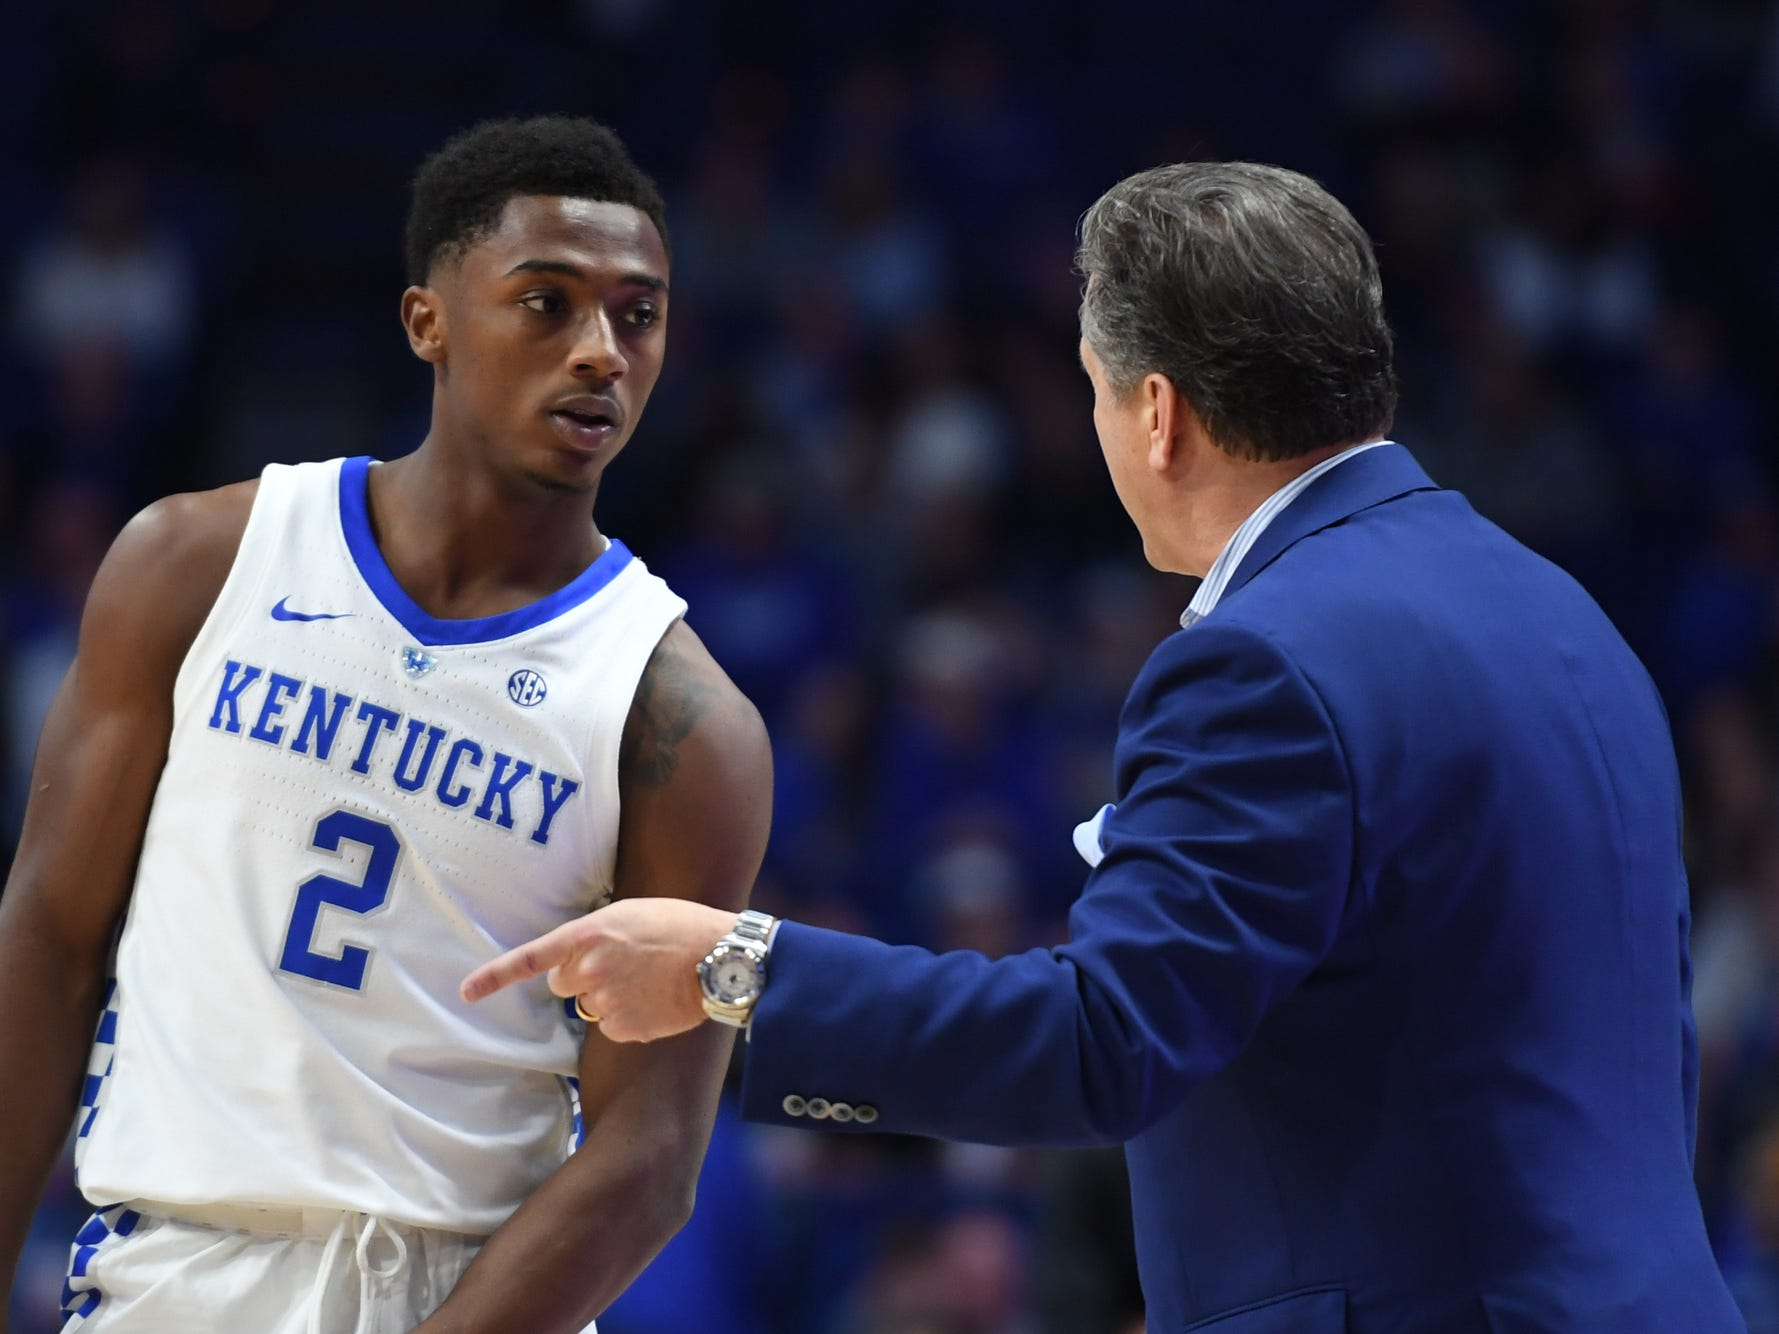 UK G Ashton Hagans listens to head coach John Calipari during the University of Kentucky men's basketball game against Tennessee State at Rupp Arena in Lexington, Kentucky, on Friday, Nov. 23, 2018.